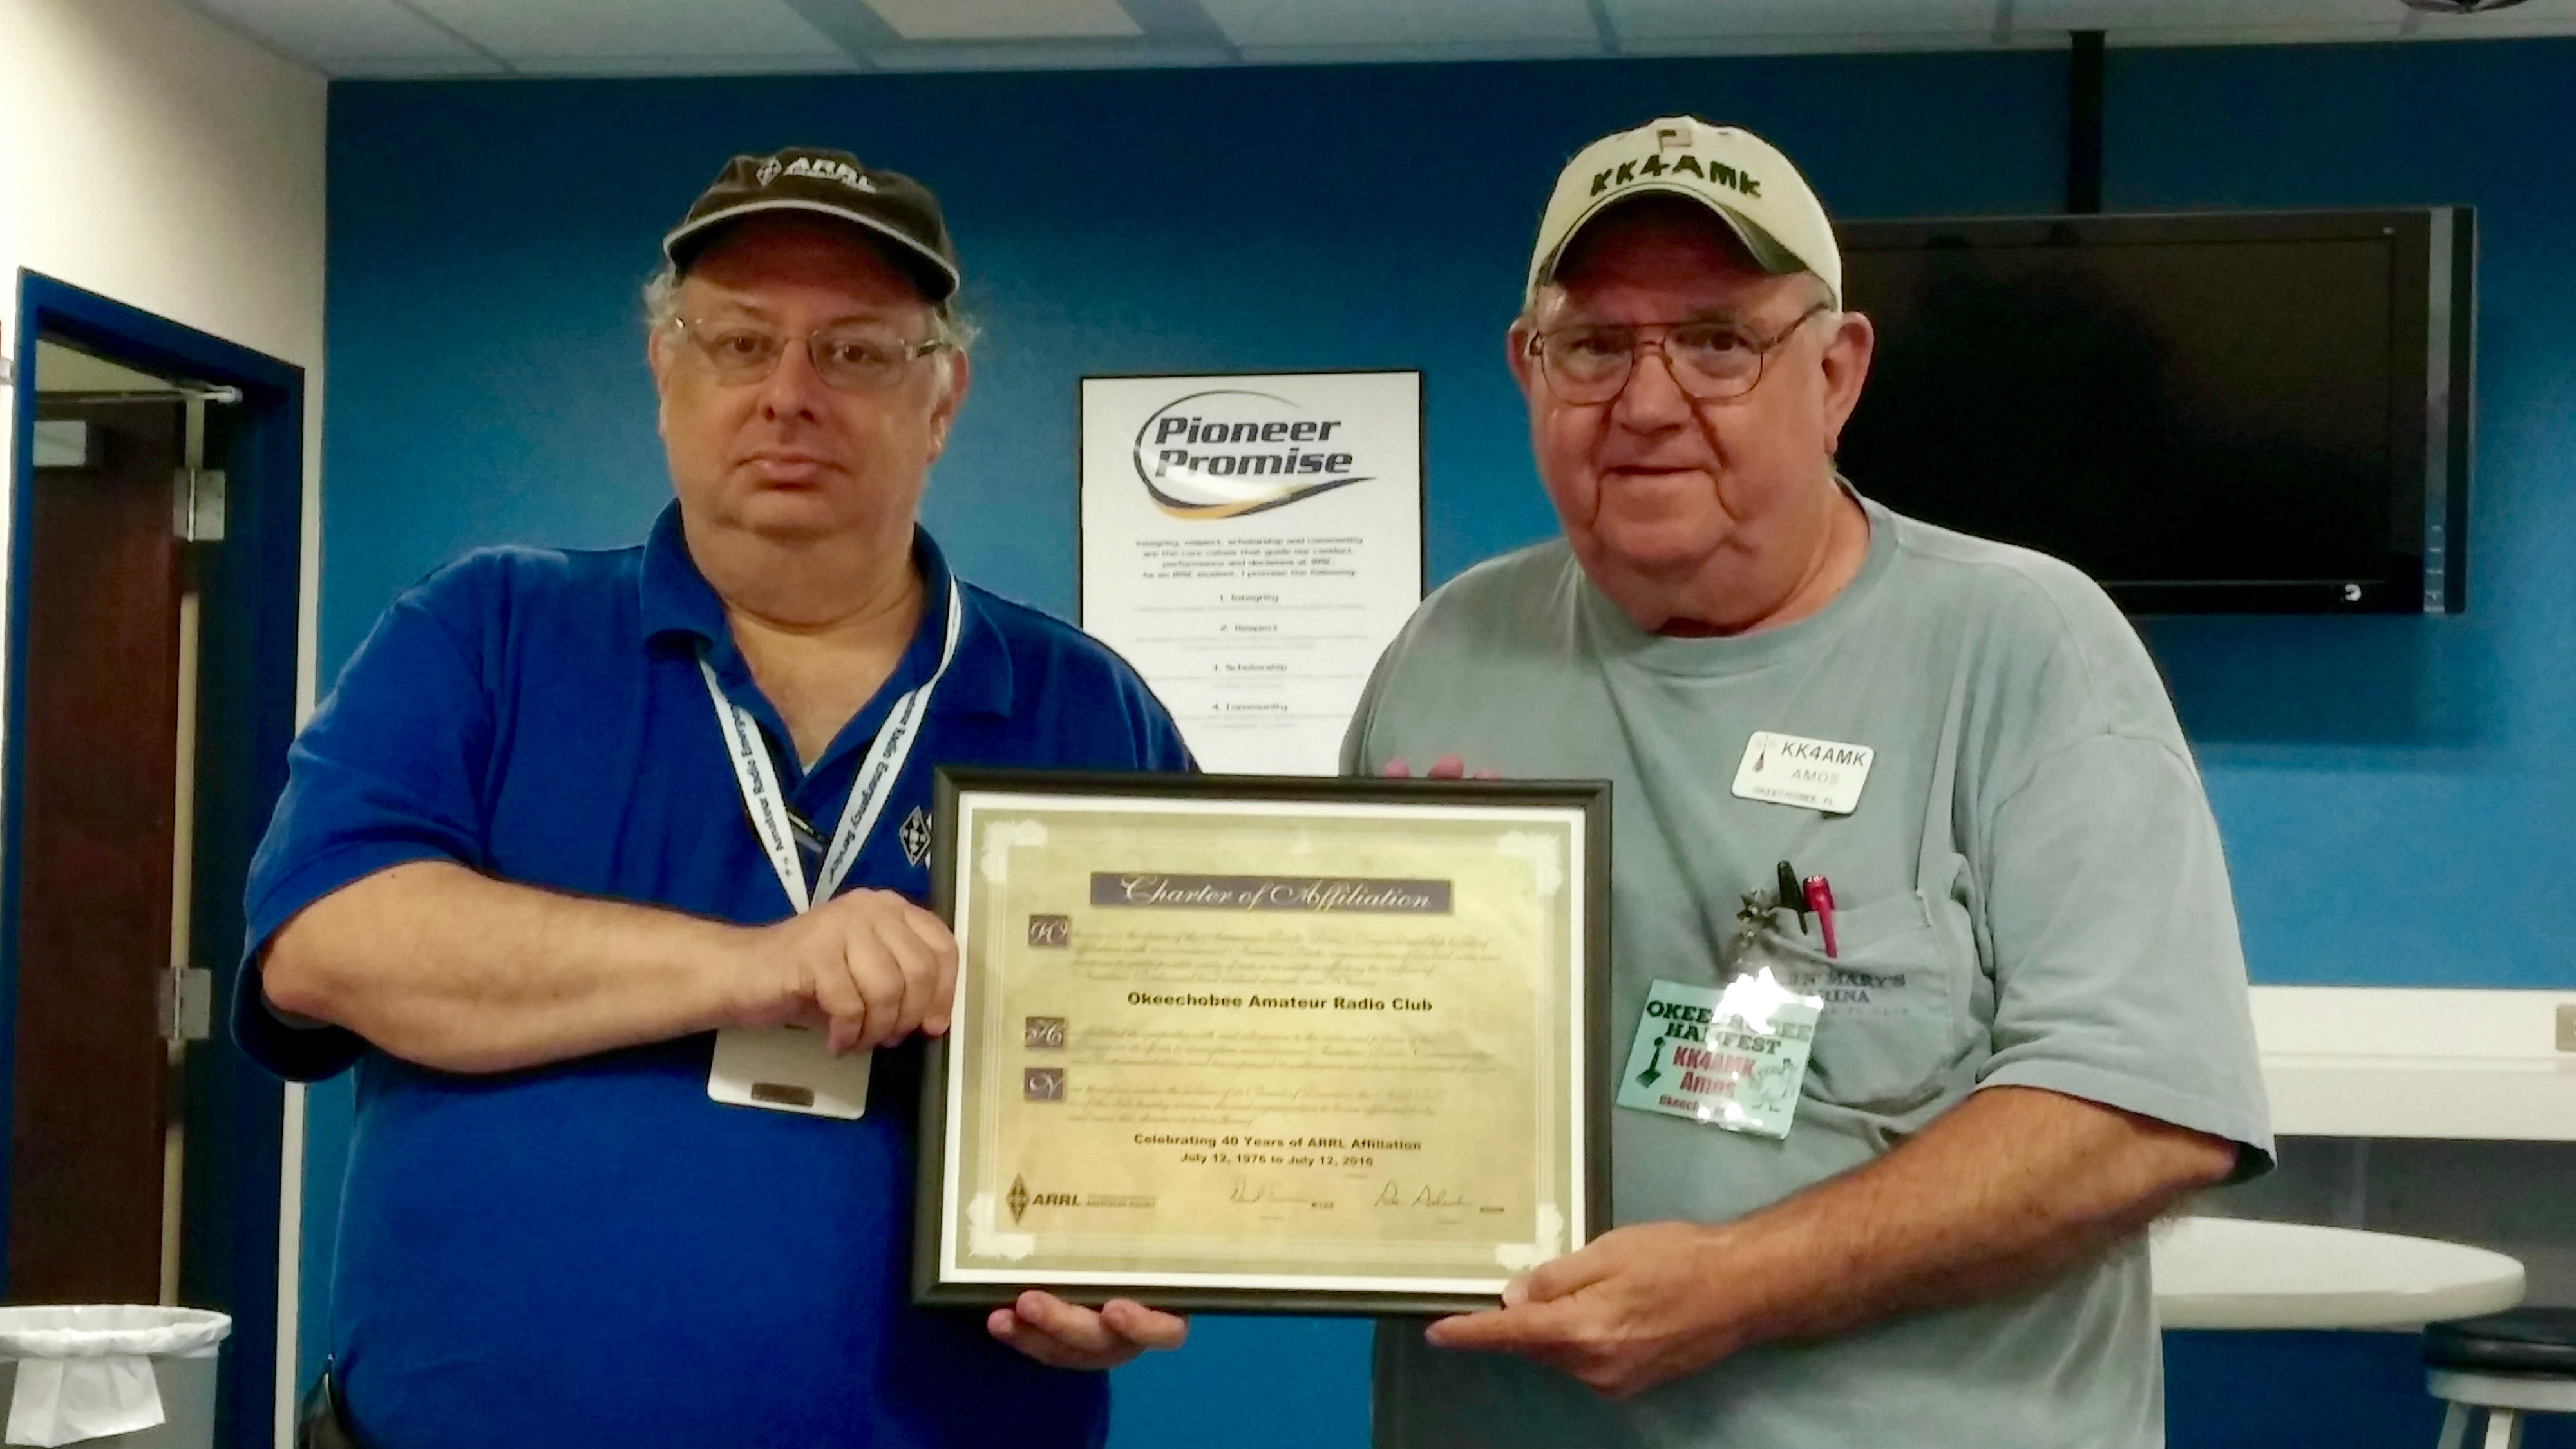 Presentation of 40 Years of ARRL Club Affiliated Certificate